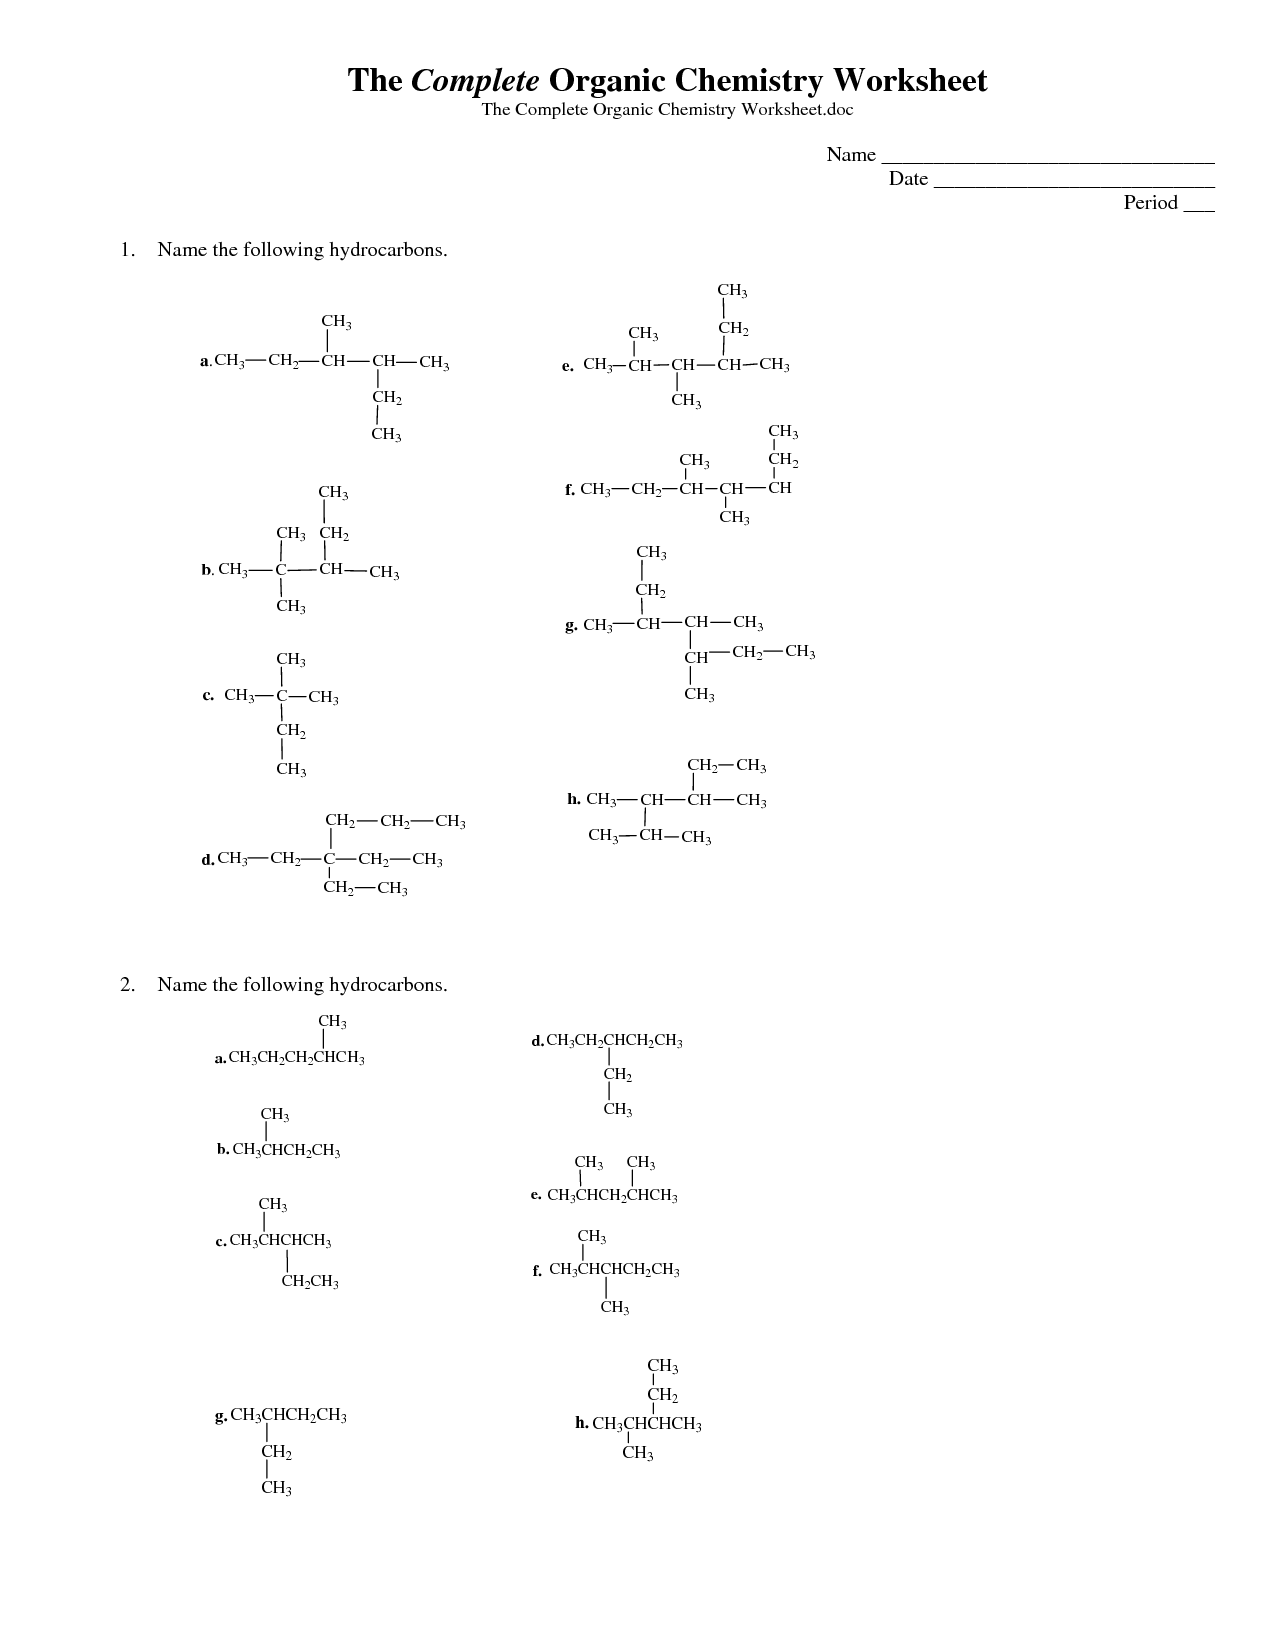 Worksheets Printable Chemistry Worksheets organic chemistry infographic the complete worksheet pdf